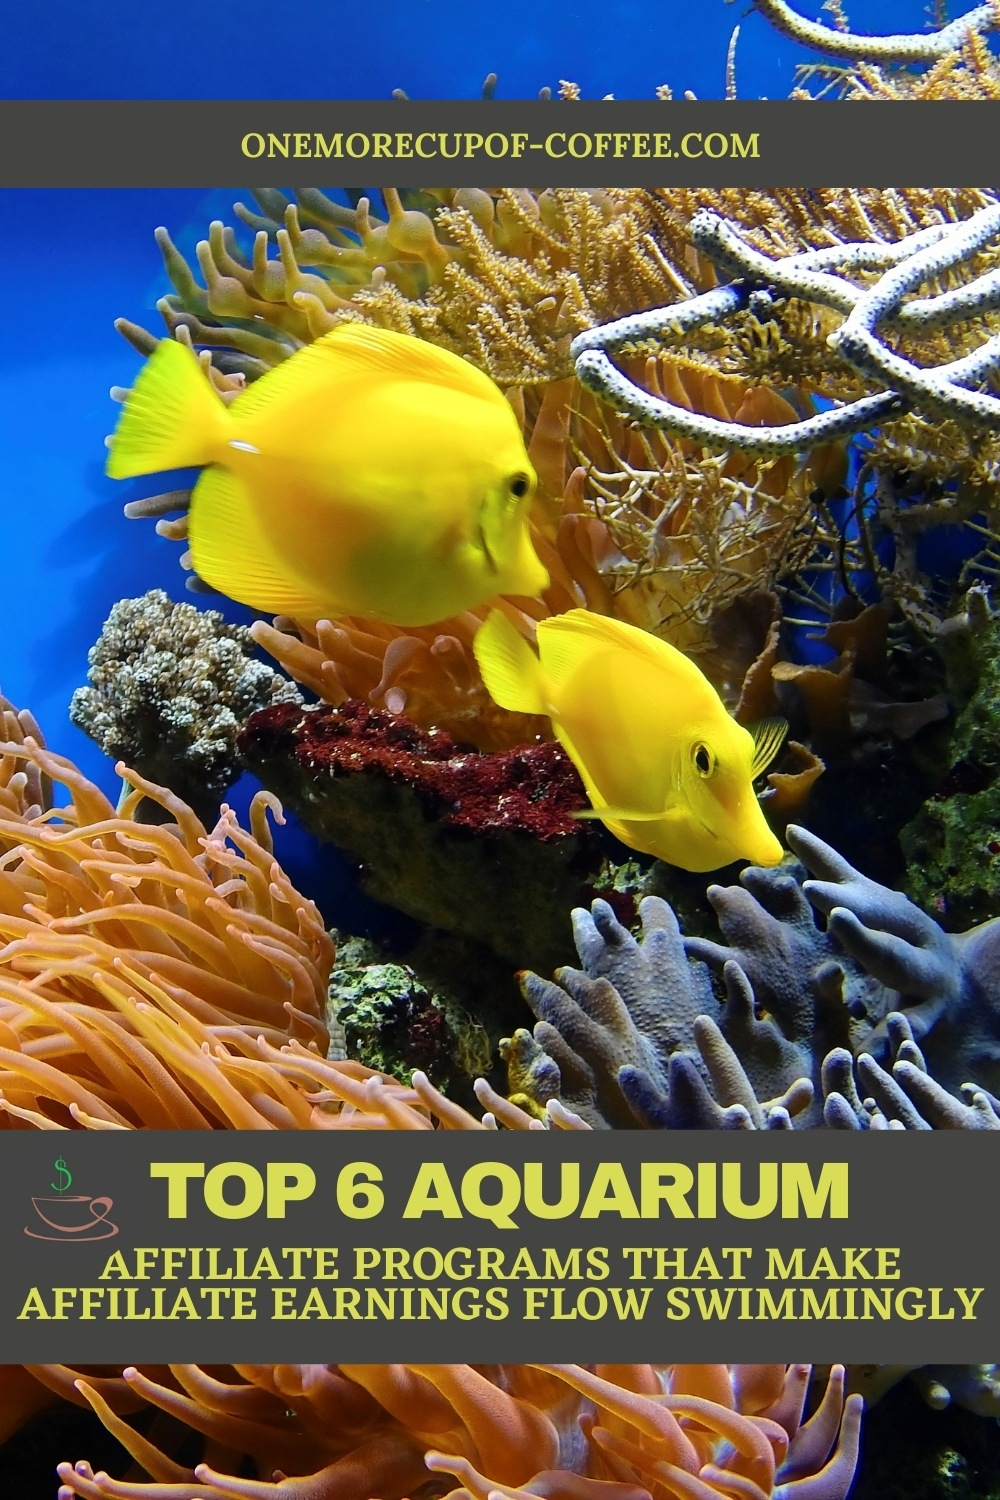 """closeup image of an aquarium with corals and a couple of yellow fish, with text overlay """"Top 6 Aquarium Affiliate Programs That Make Affiliate Earnings Flow Swimmingly"""""""